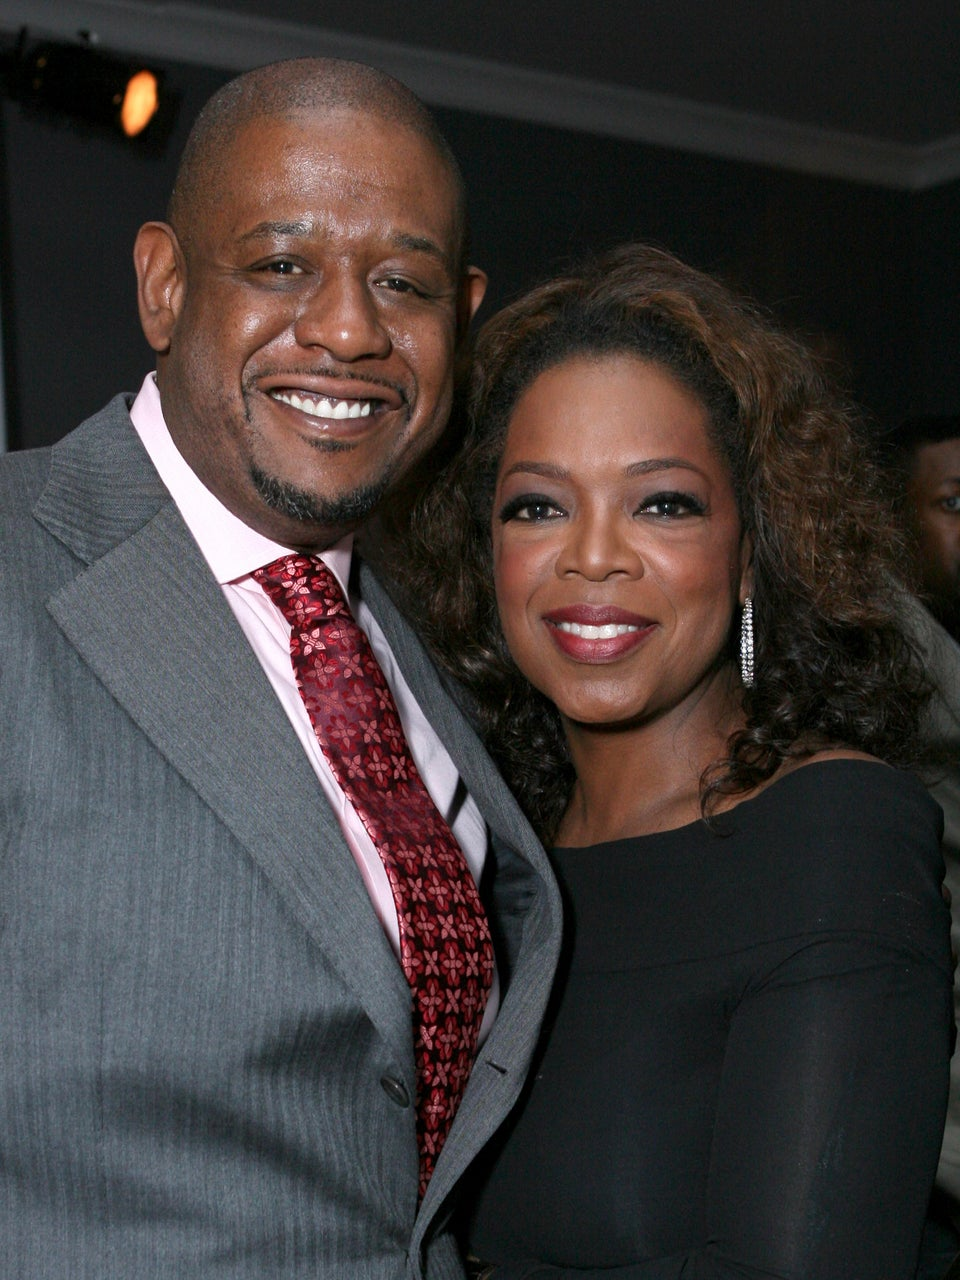 Are Oprah Winfrey and Forest Whitaker Doing a Movie Together?